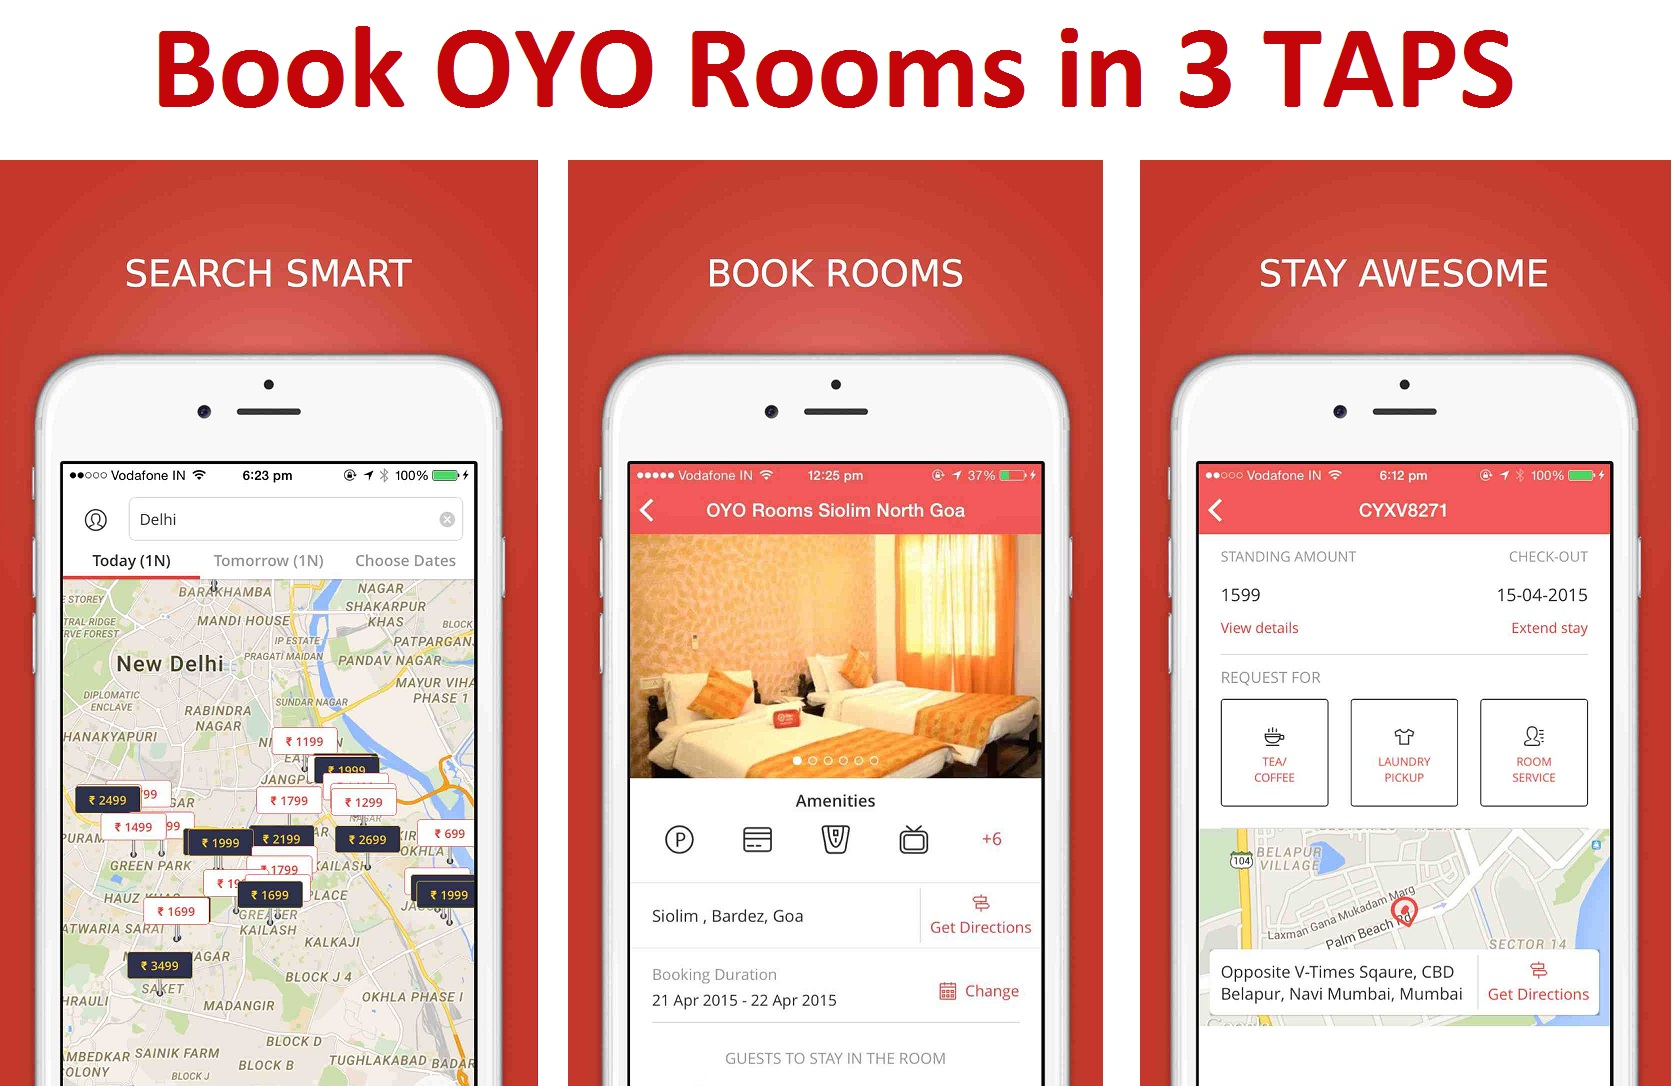 business model of oyo rooms - 3